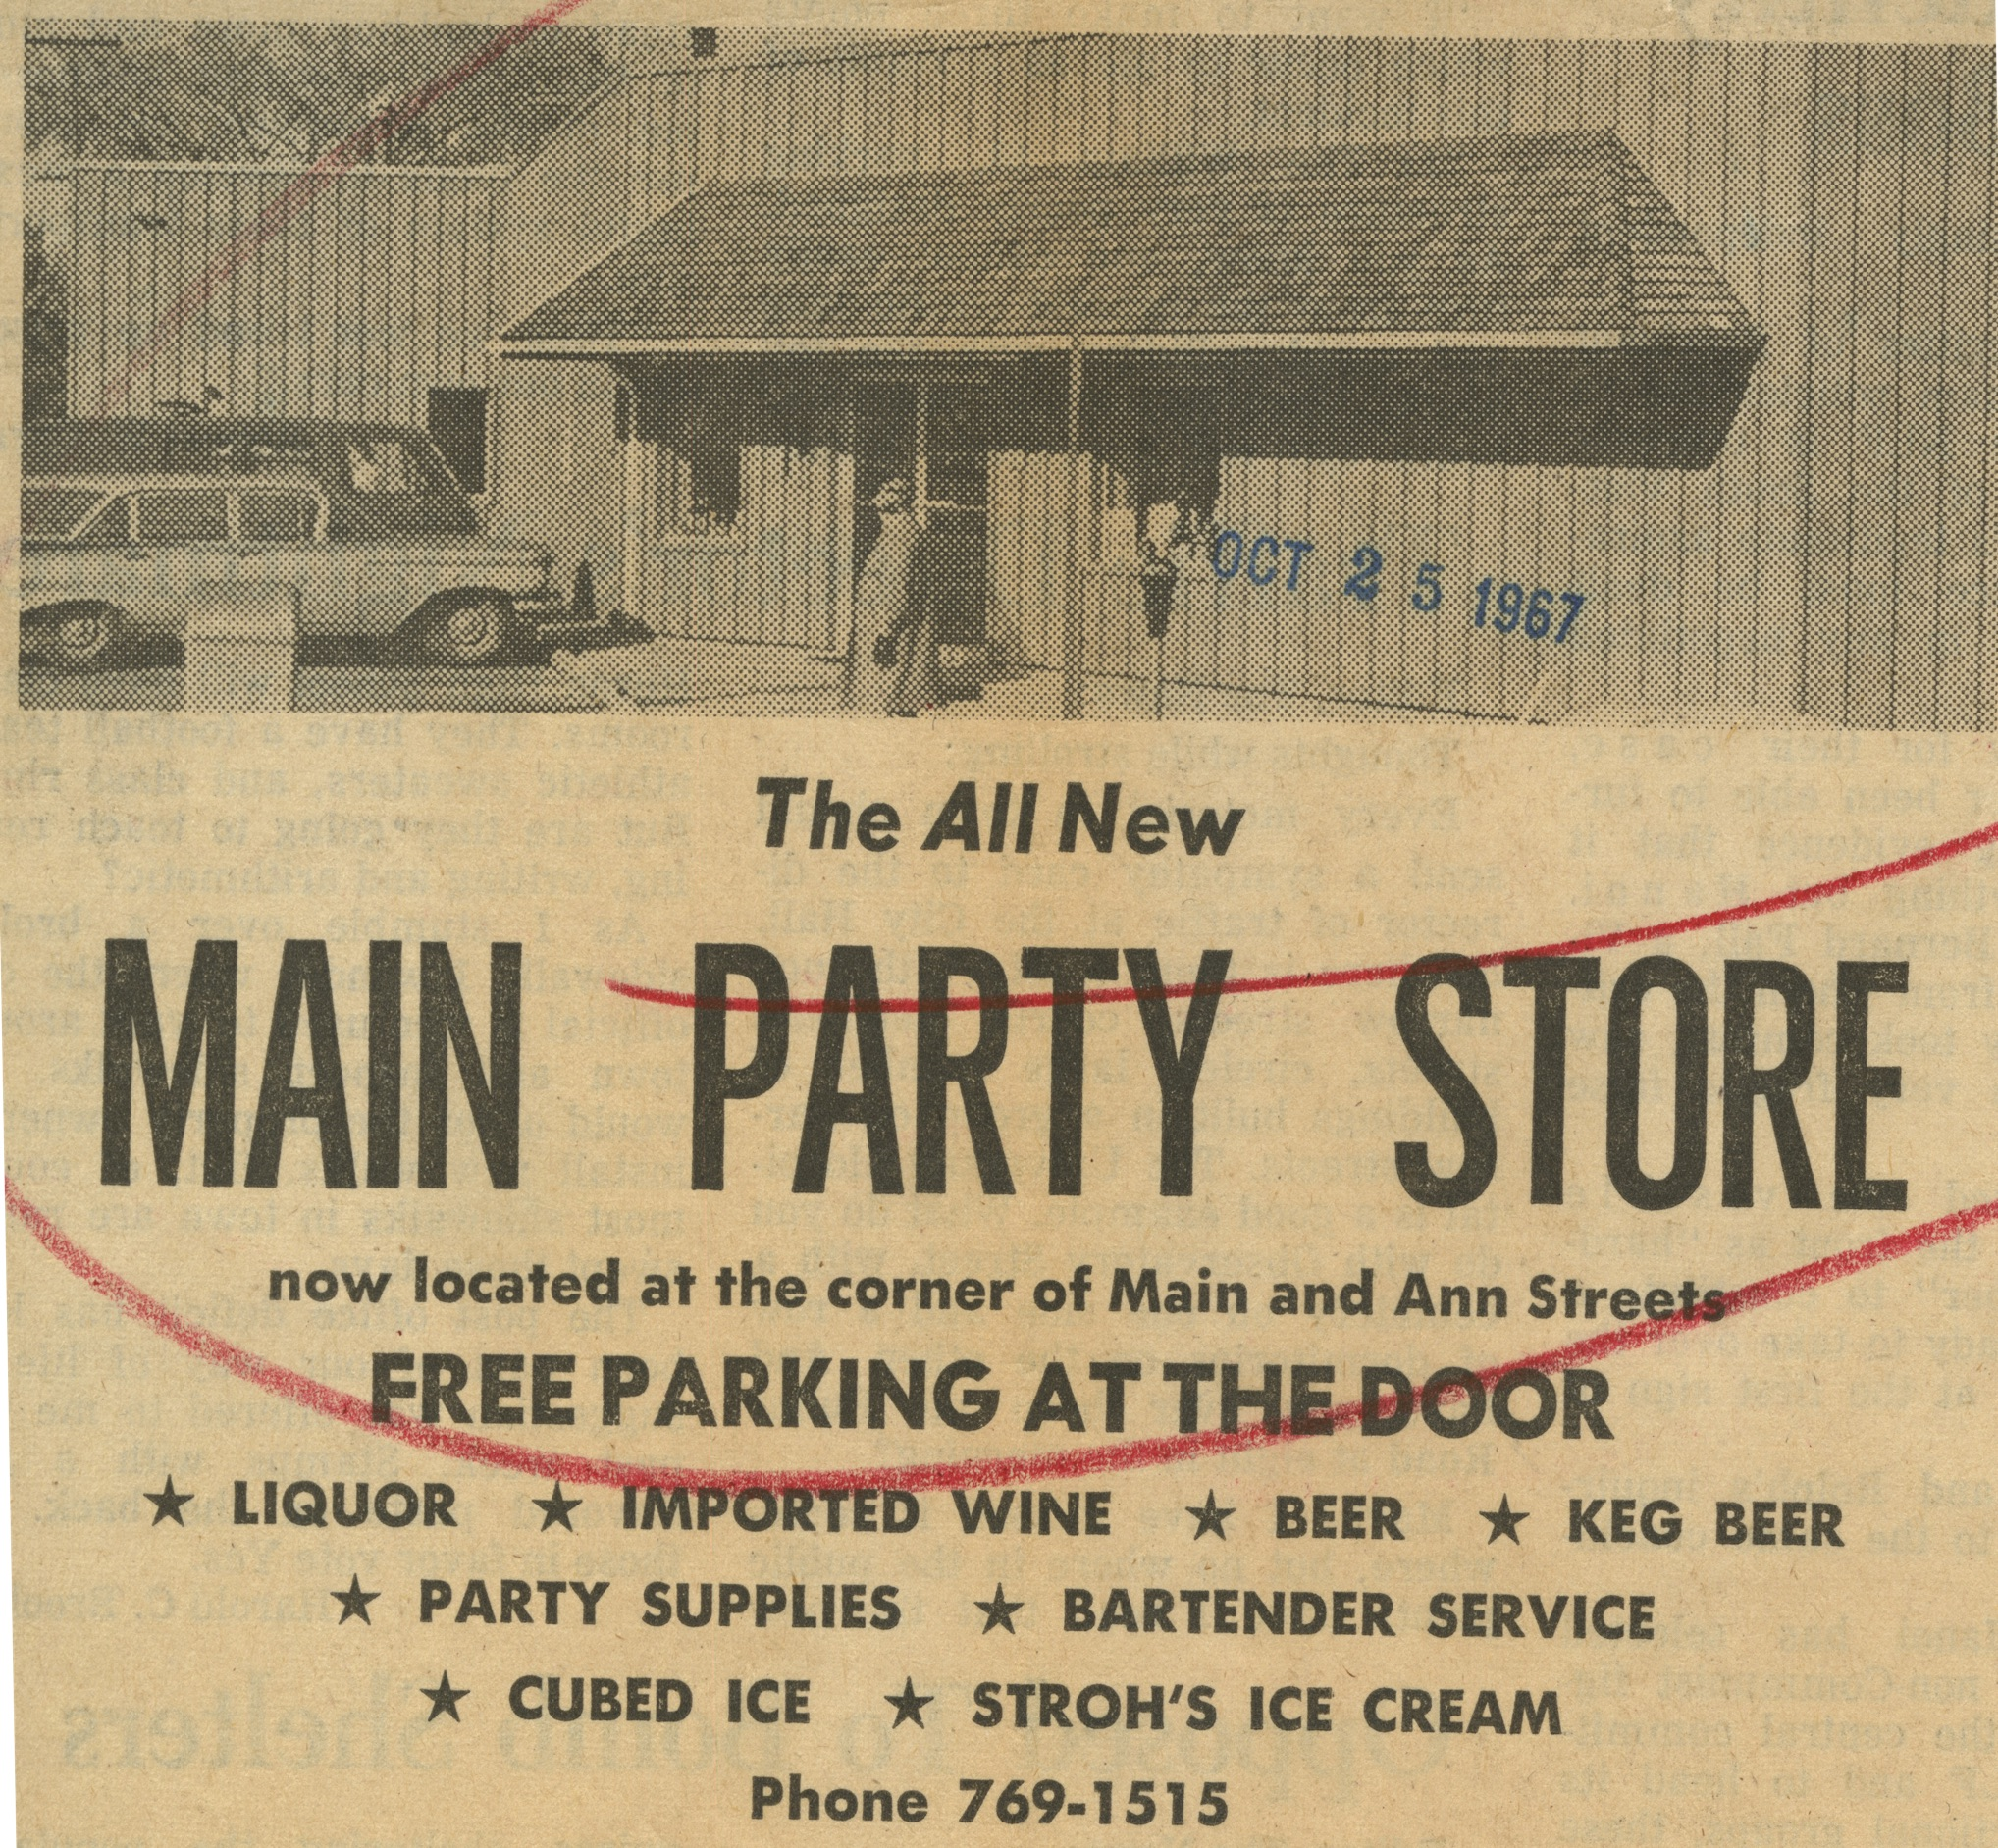 The All New Main Party Store - advertisement image